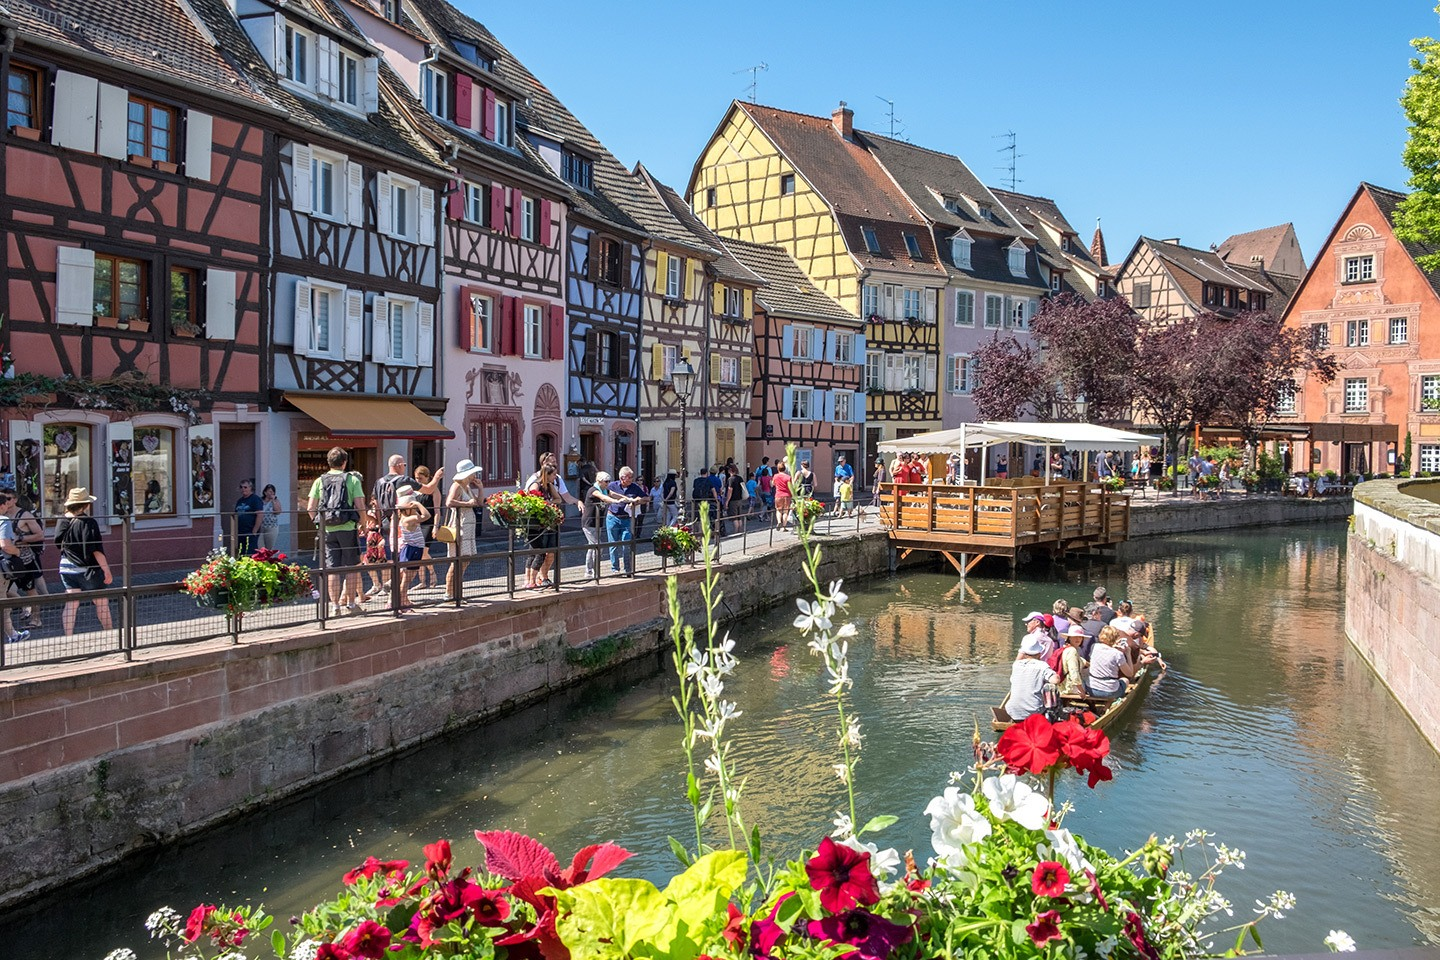 Along the canals in Colmar